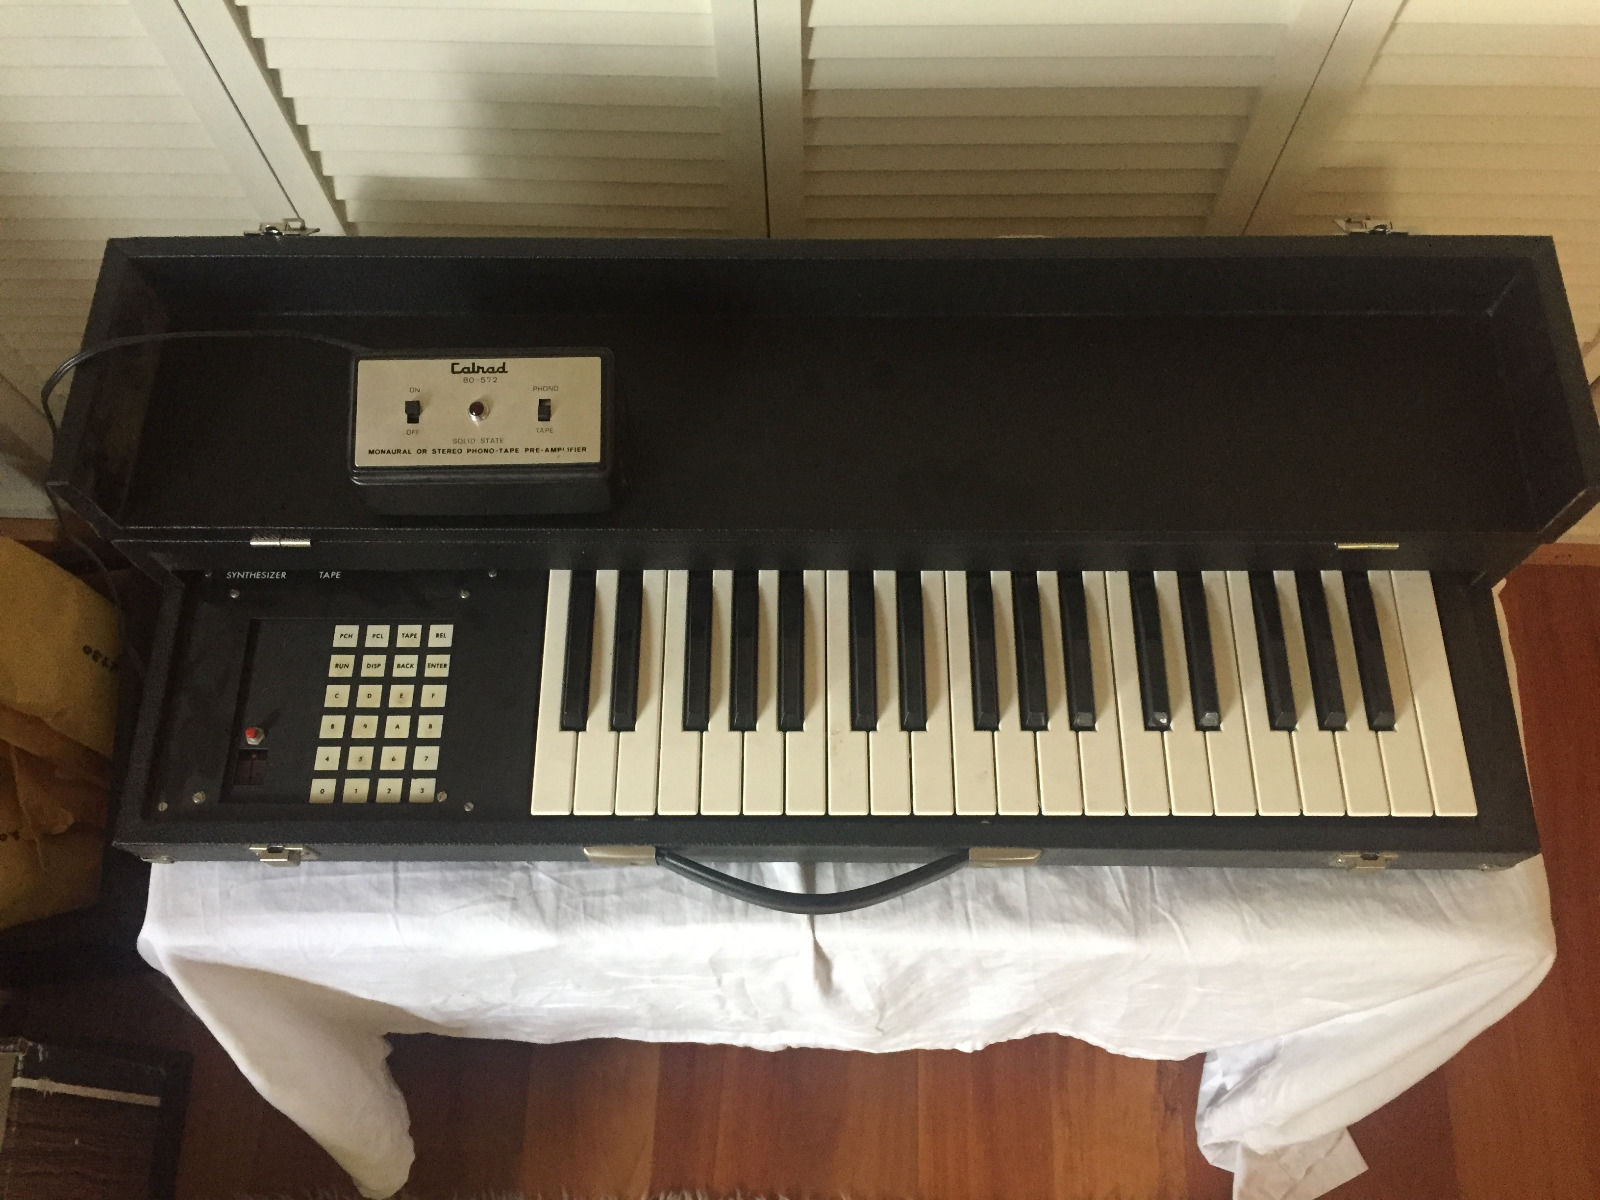 matrixsynth paia modular analog synthesizer phlanger pedal extras. Black Bedroom Furniture Sets. Home Design Ideas